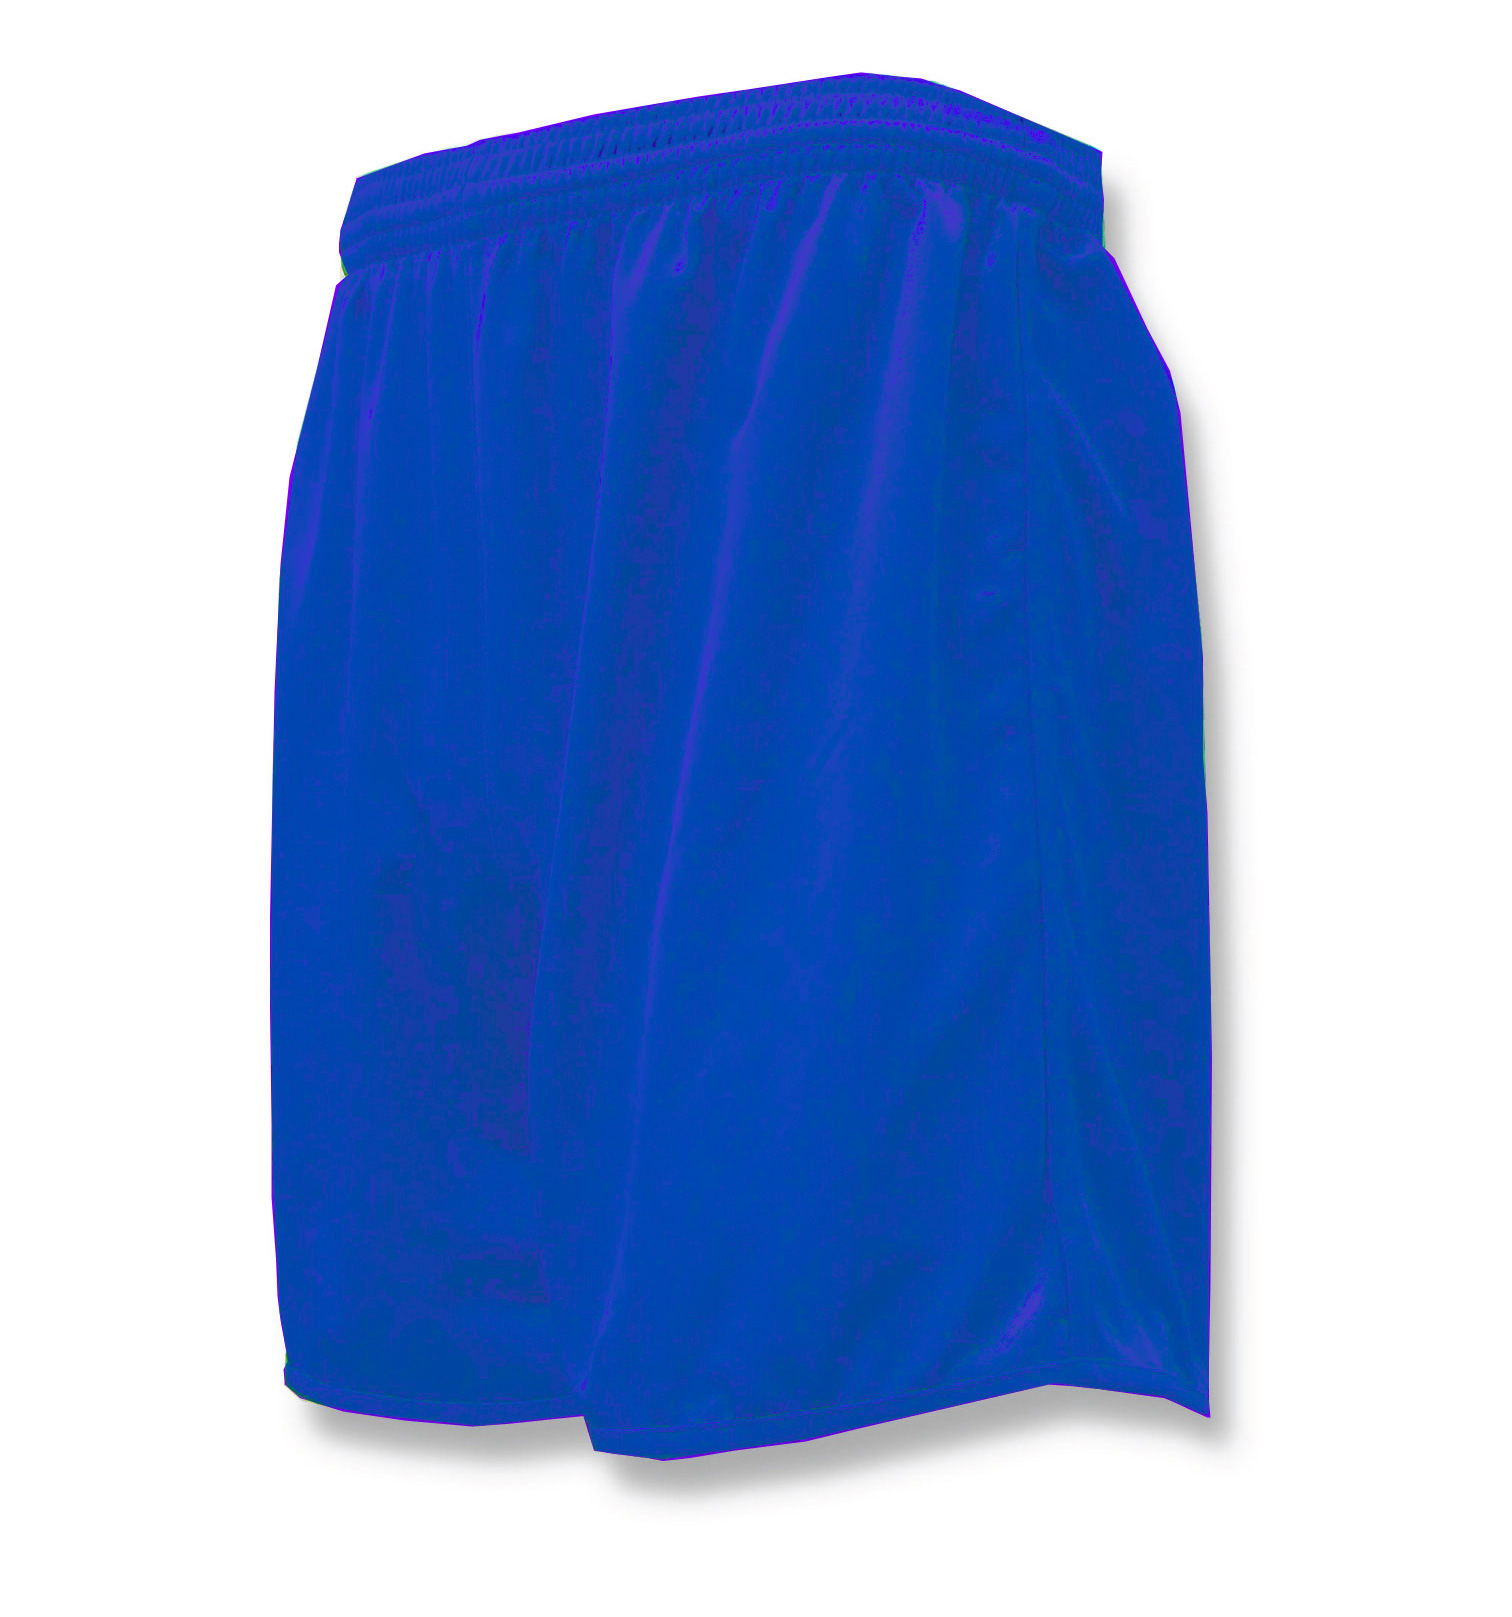 Bravo soccer shorts in royal by Code Four Athletics